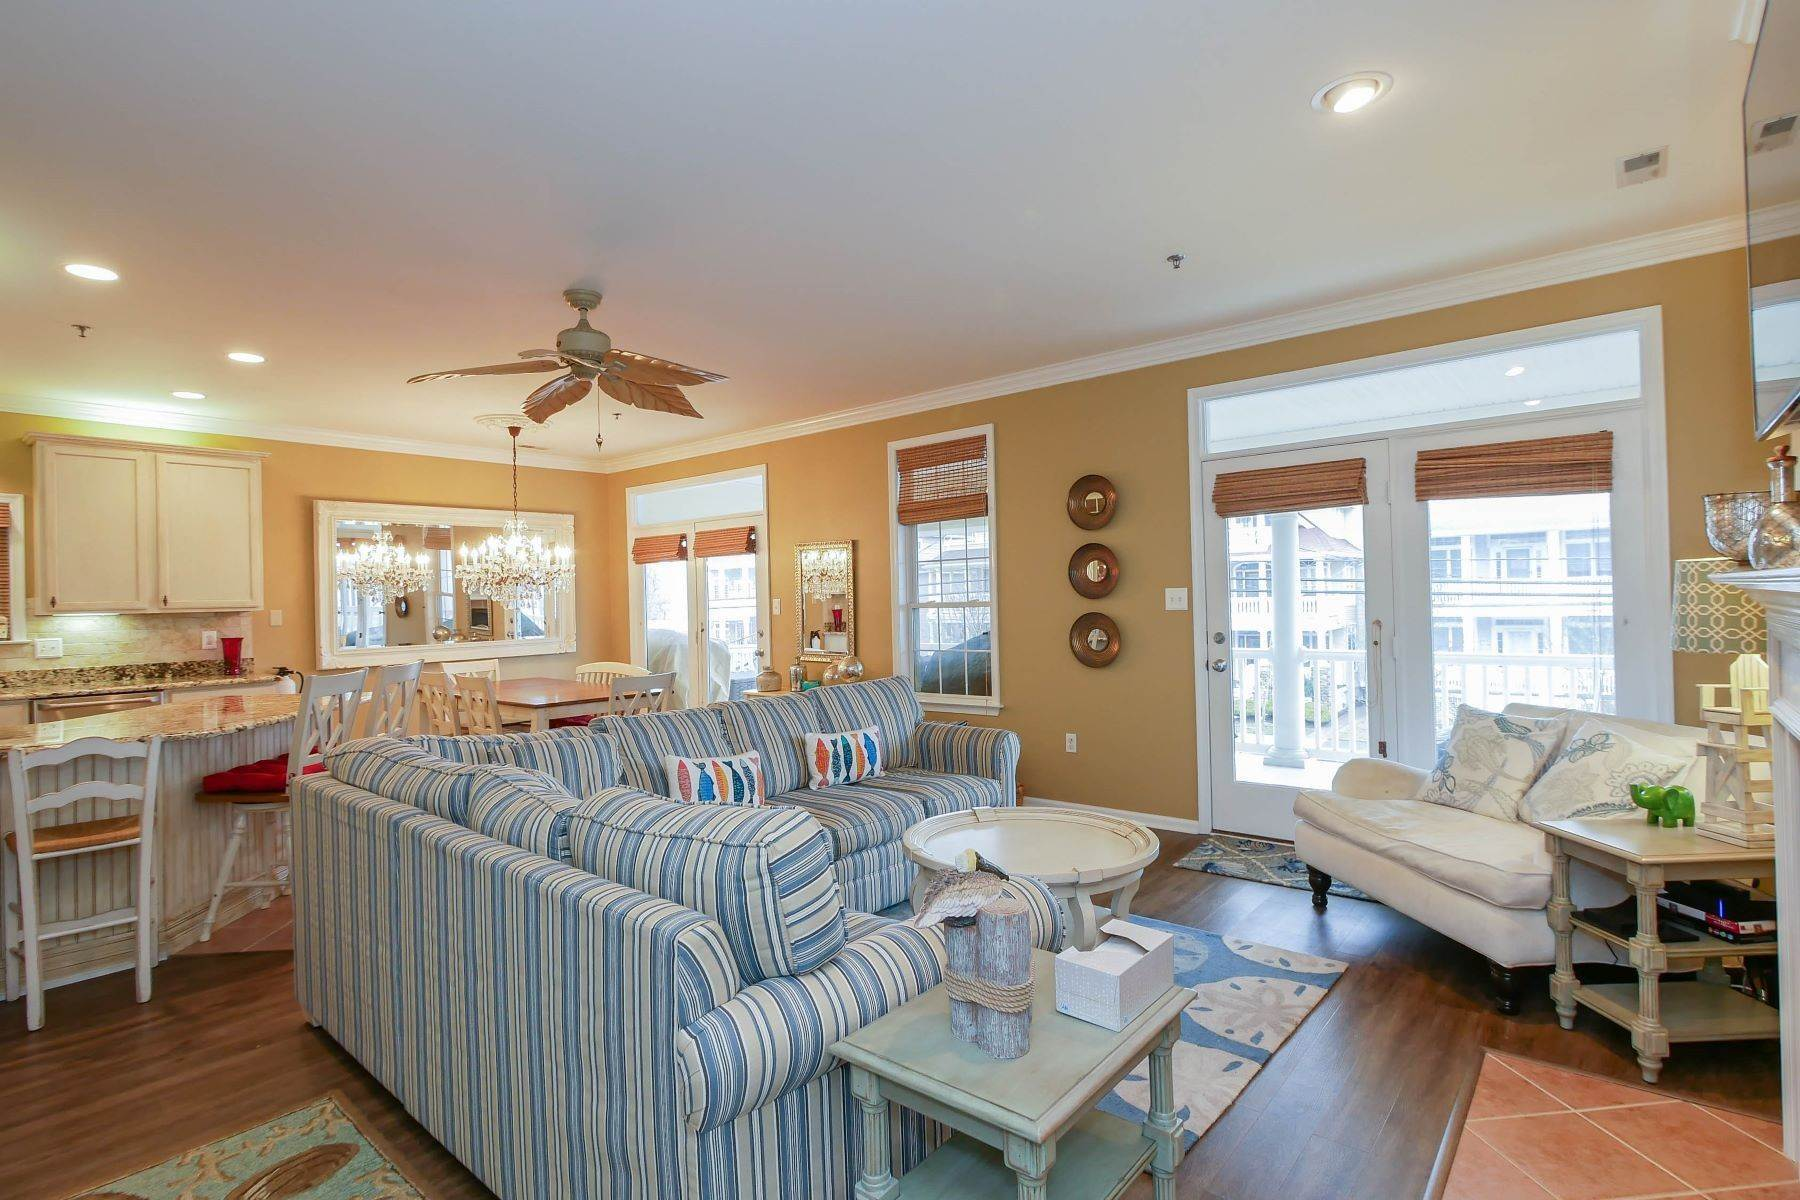 2. Condominiums for Sale at 1336-38 Wesley Ave, Unit 2 Ocean City, New Jersey 08226 United States